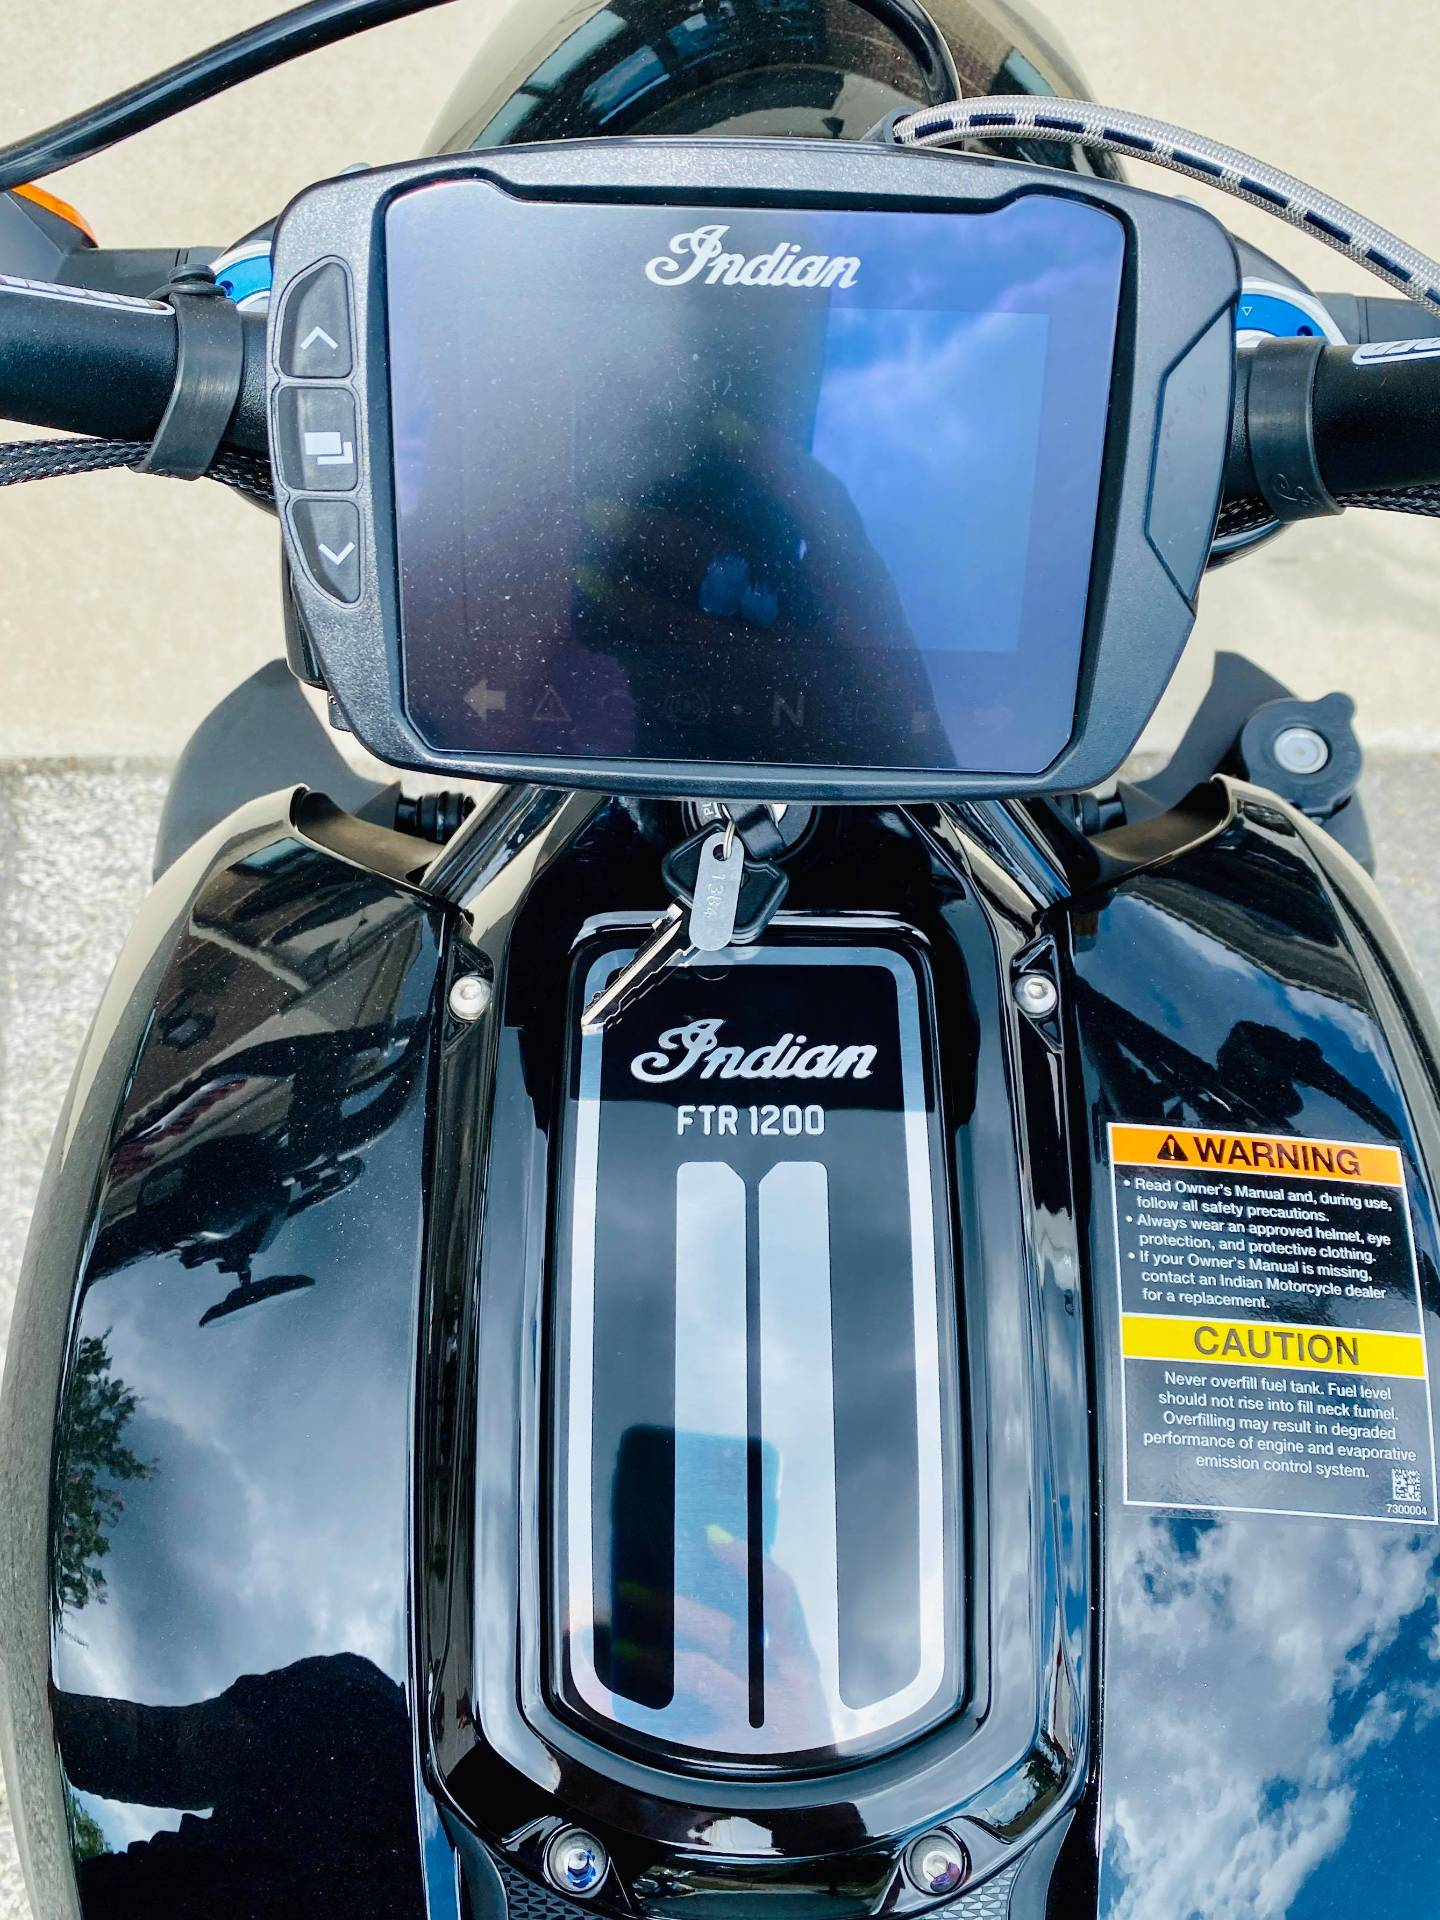 2019 Indian FTR™ 1200 S in Fredericksburg, Virginia - Photo 2